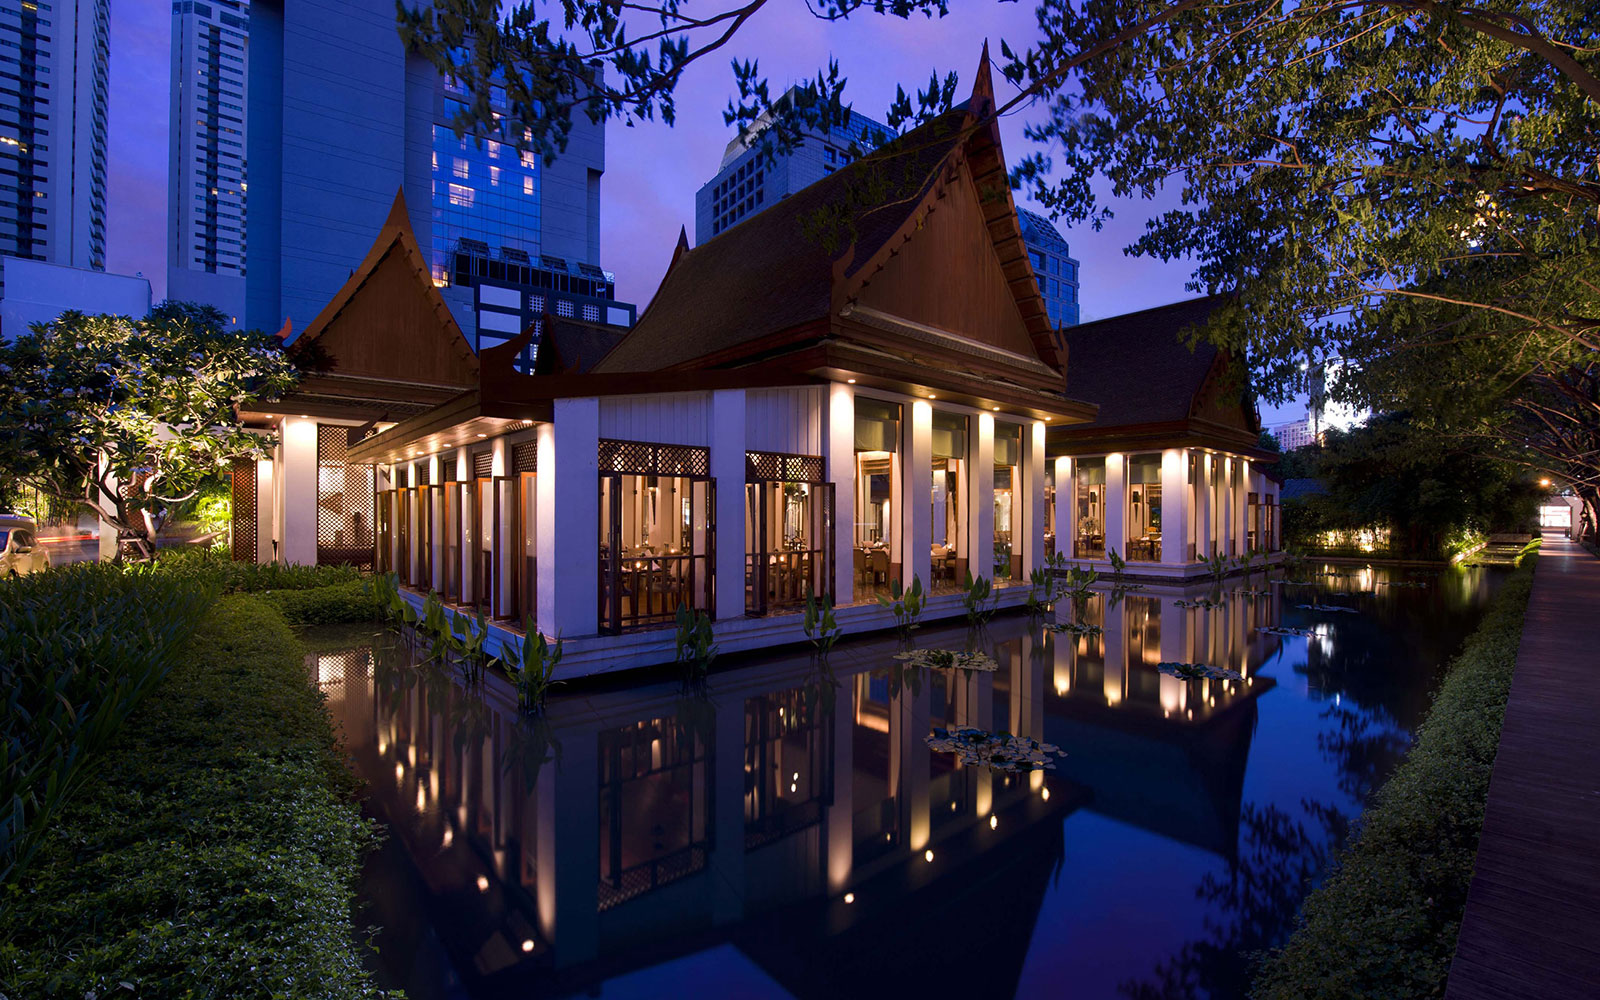 Bangkok Hotels Where The Restaurants Compete With the Rooms: Celadon, The Sukothai